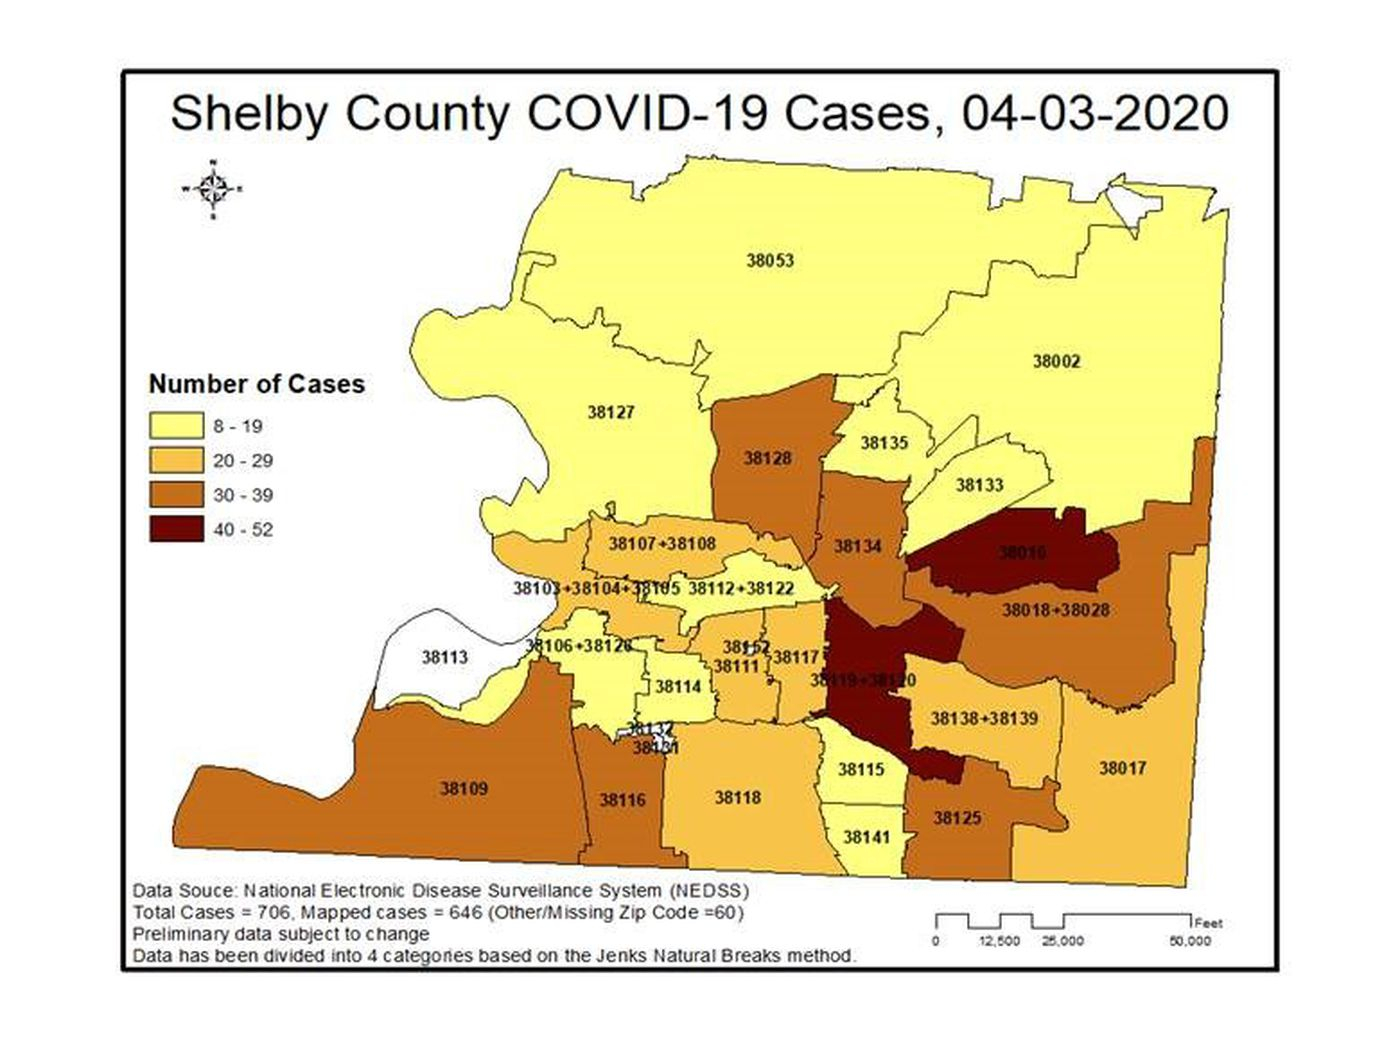 Tennessee Covid 19 Cases Top 3,300; 43 Deaths Reported Throughout When Is Spring Break For Davidson County Tn